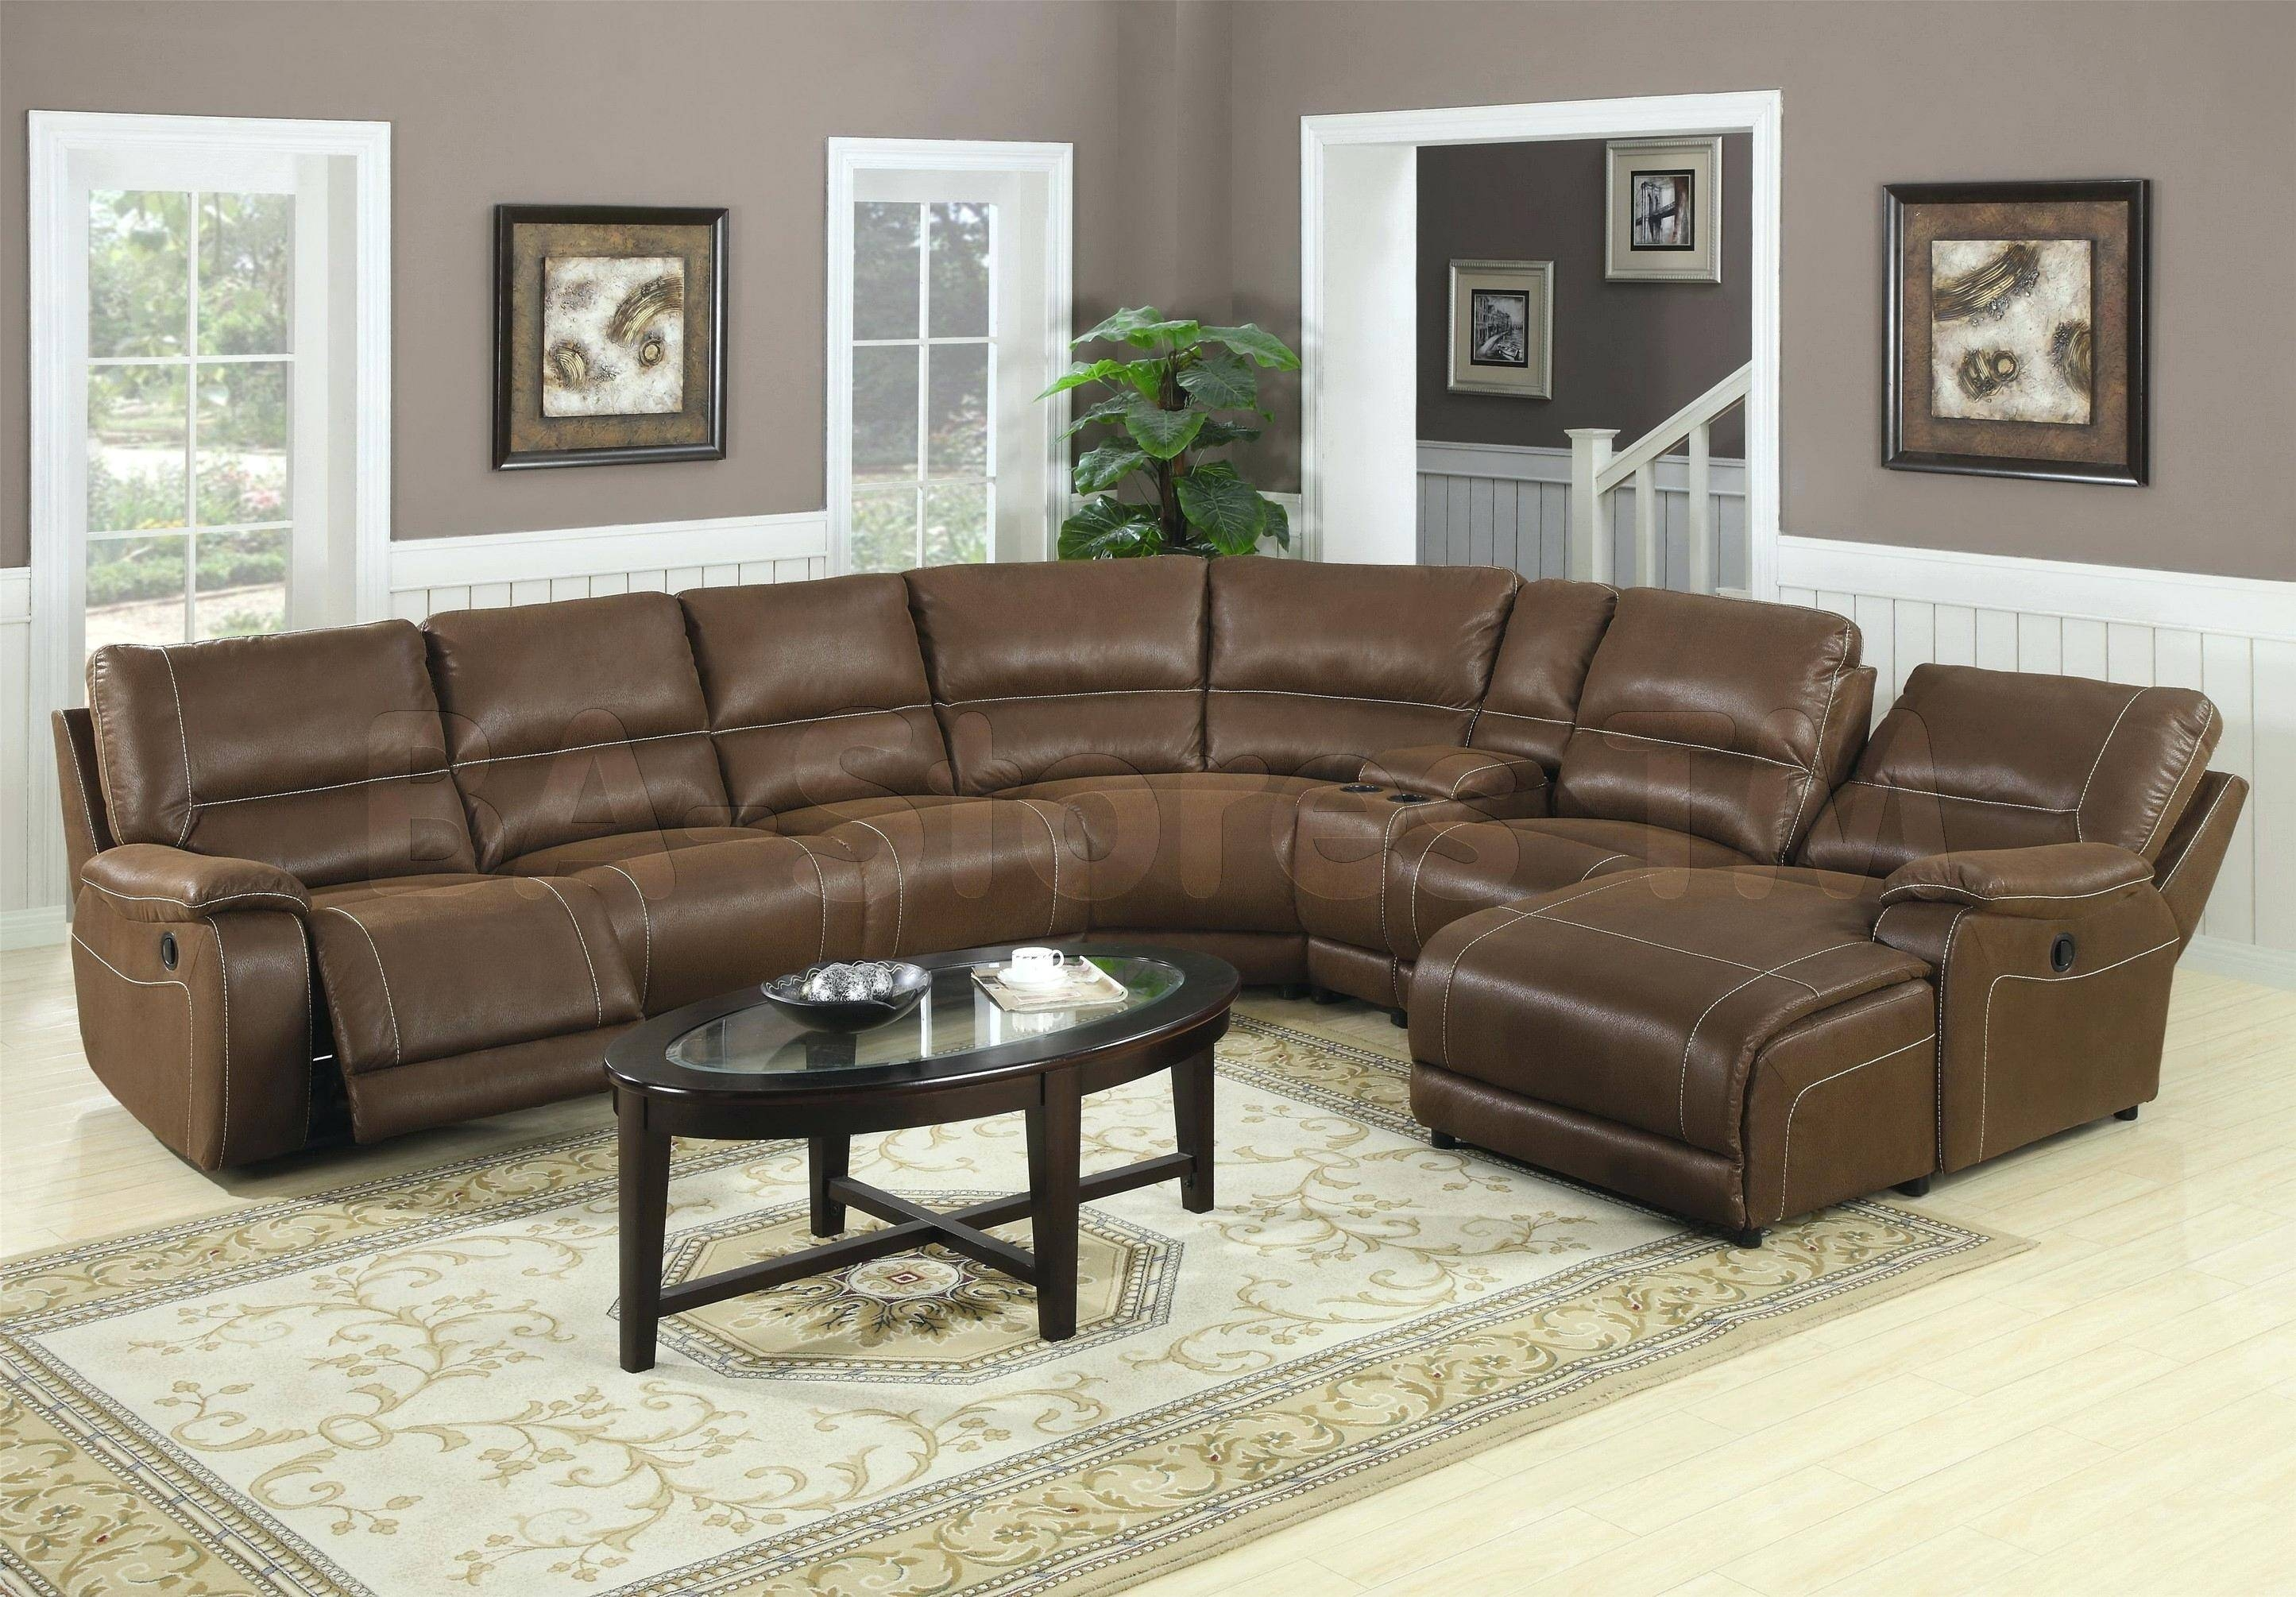 Two Seater Recliner Leather Sofa | Real Leather Reclining Sofa